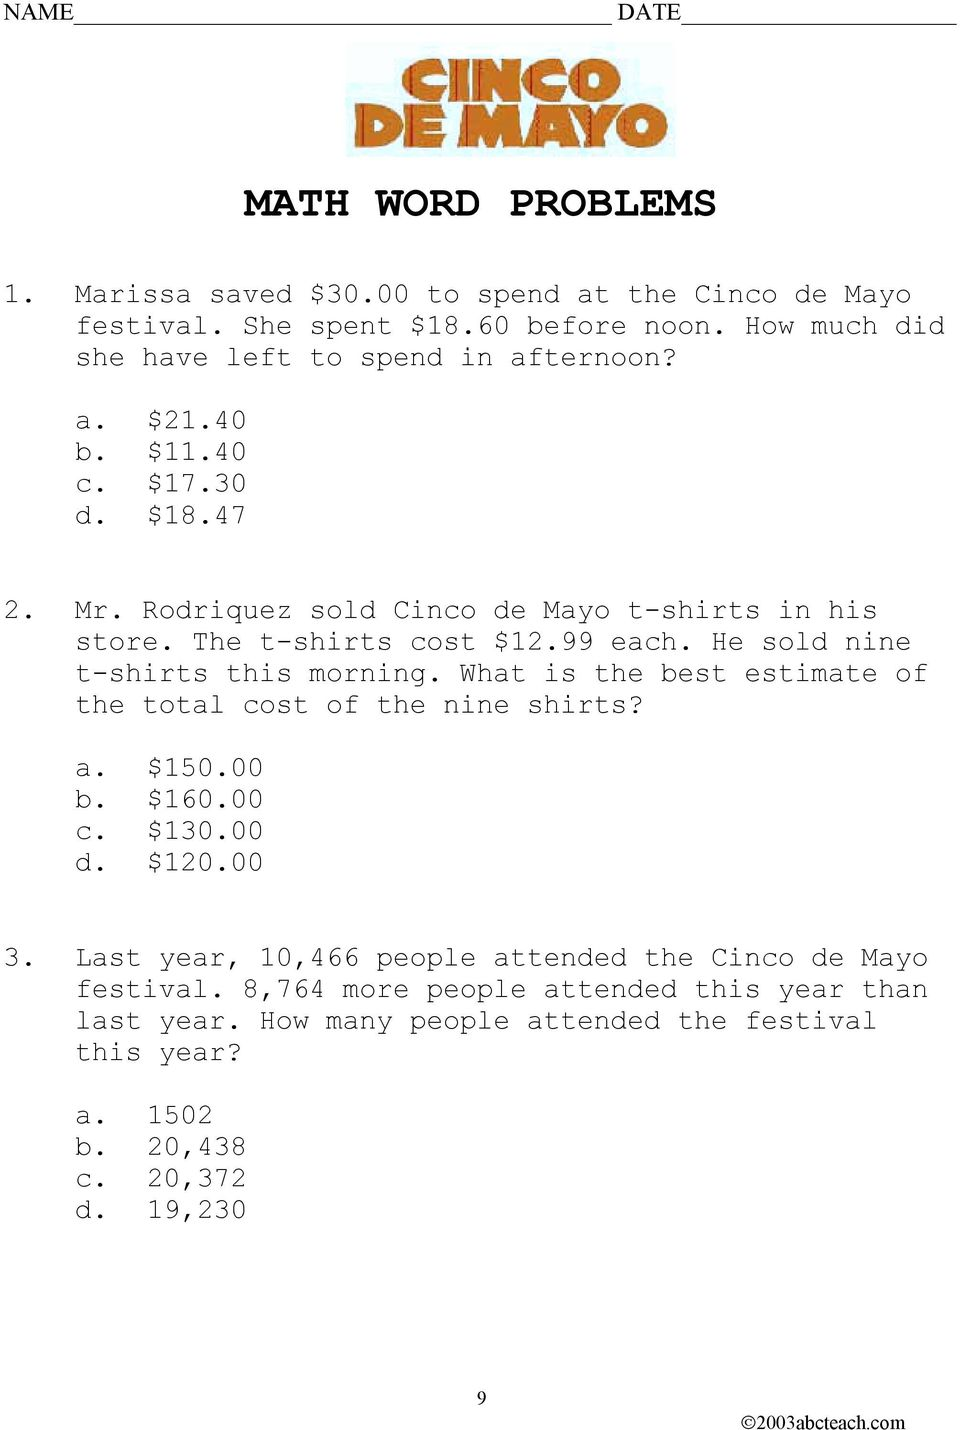 hight resolution of NAME DATE CINCO DE MAYO - PDF Free Download